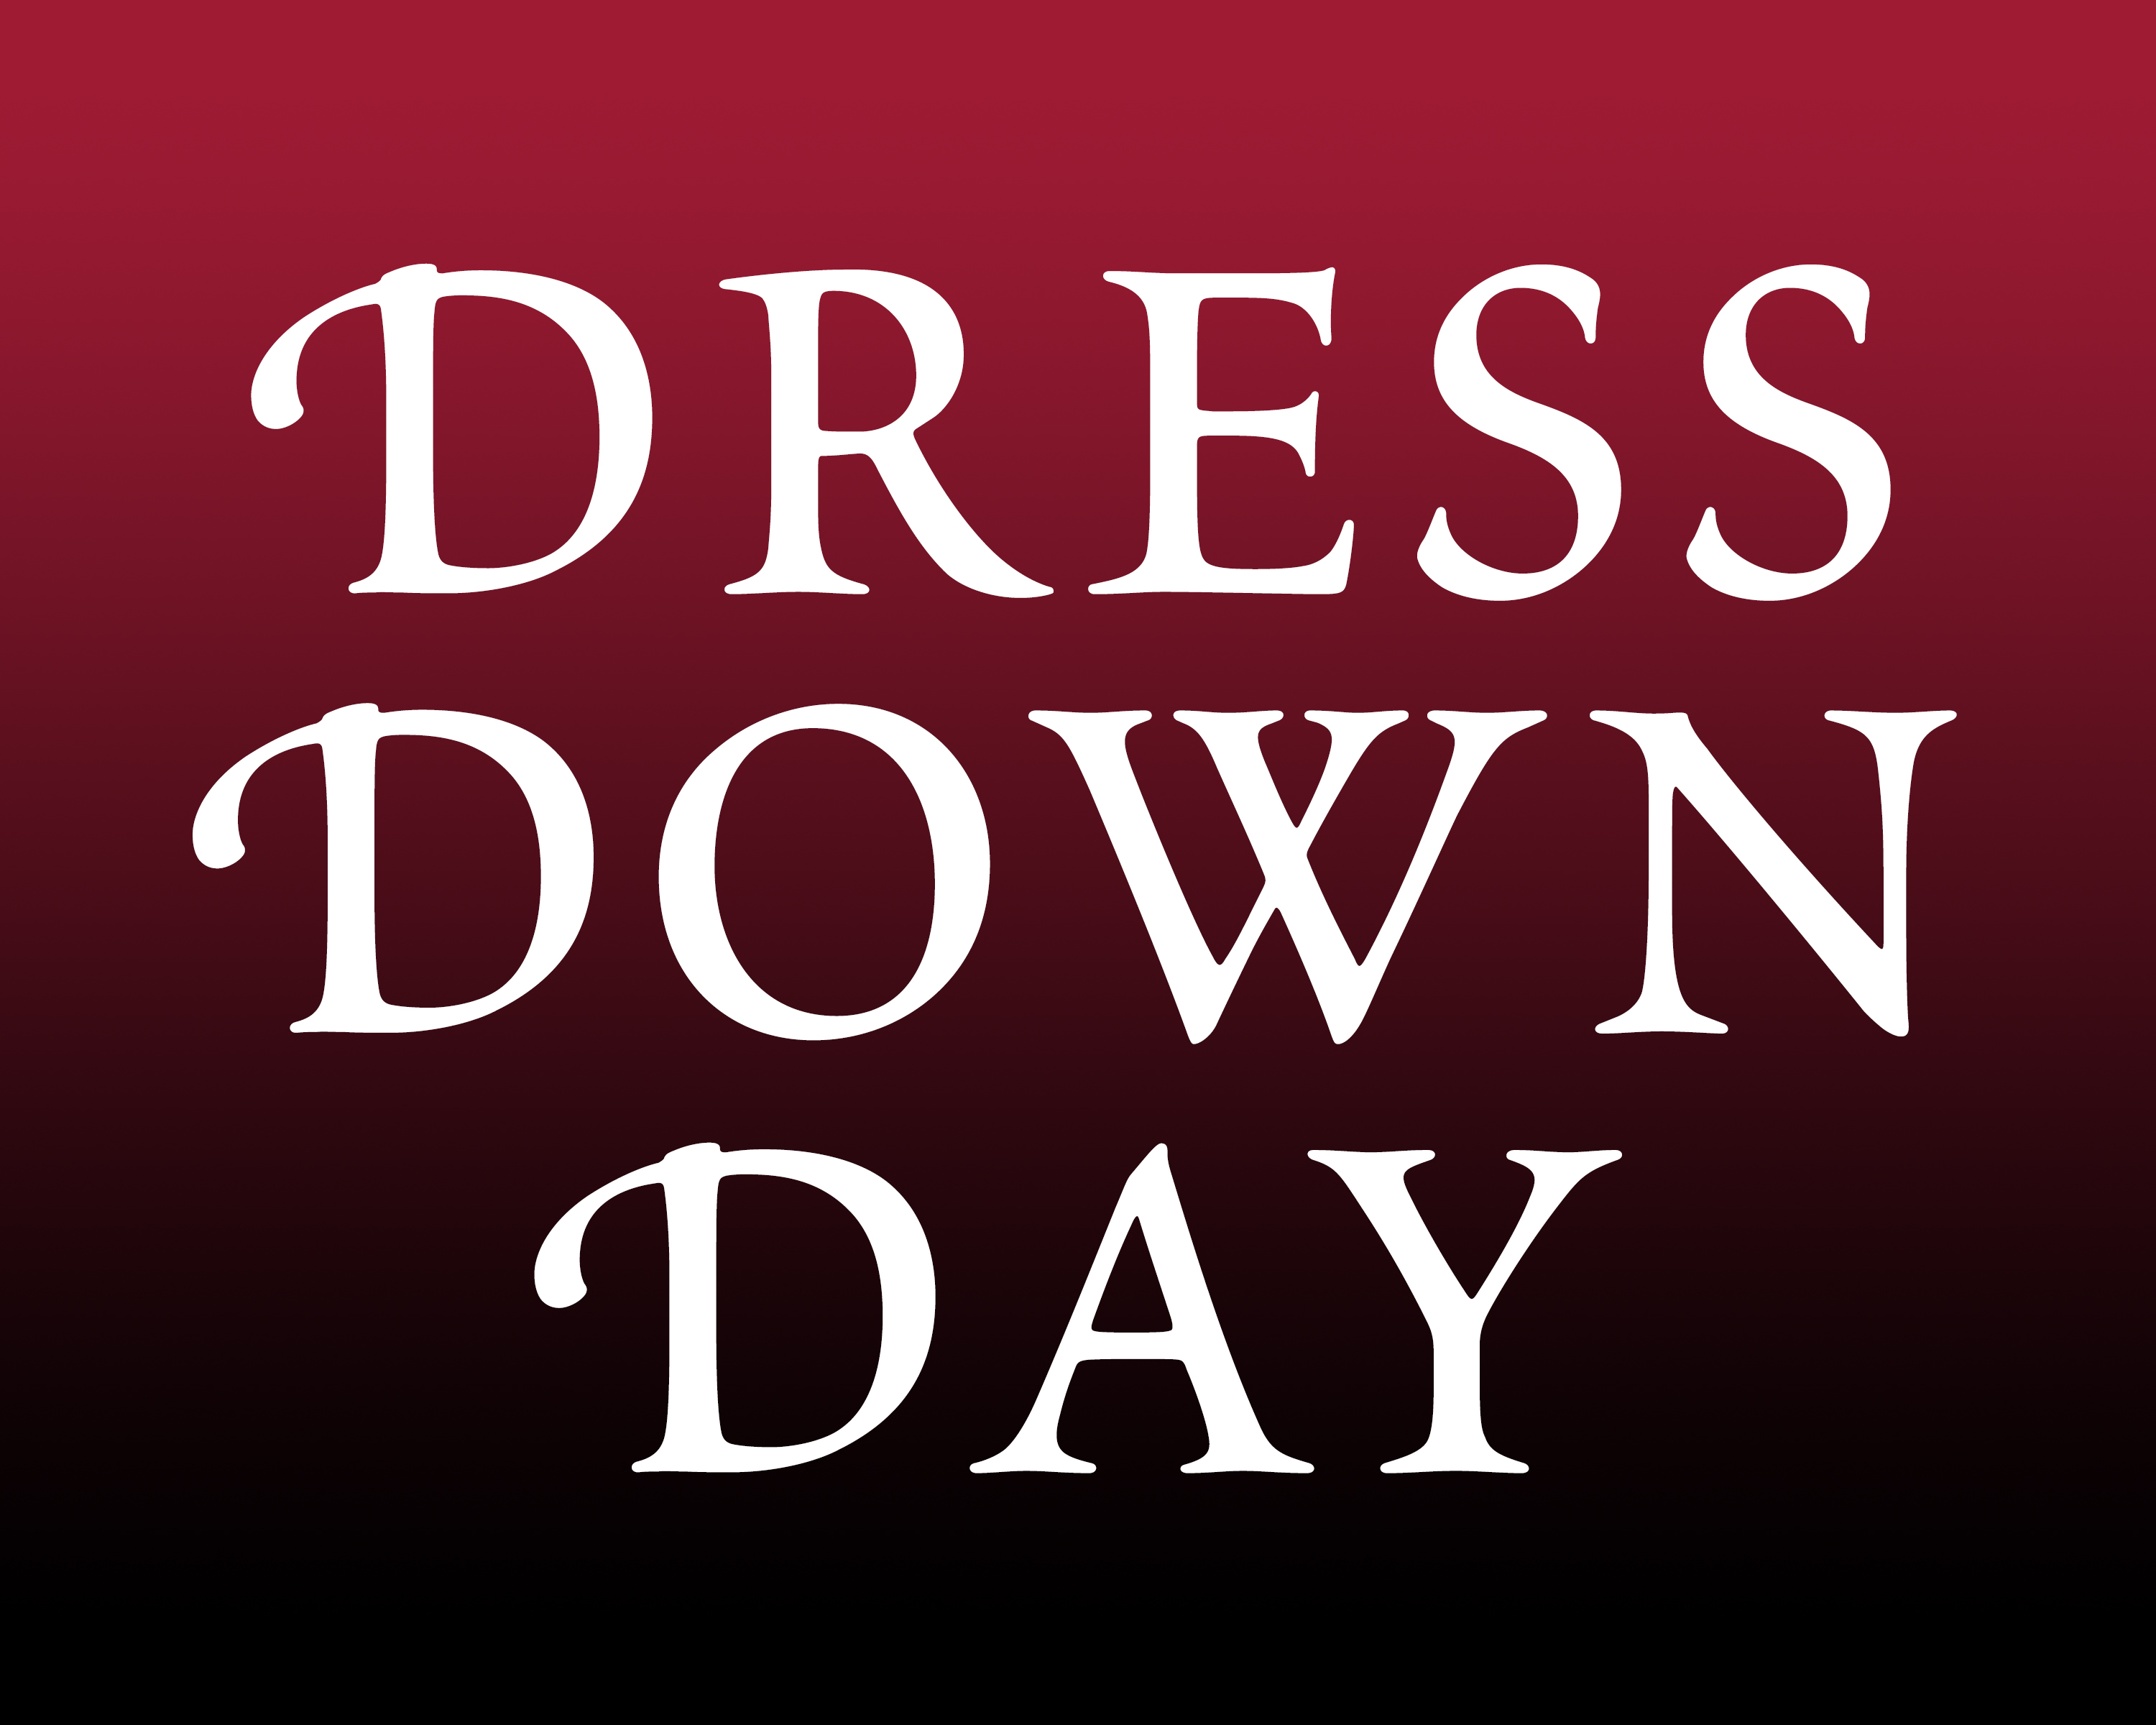 Friday, May 3rd – Dress Down Day